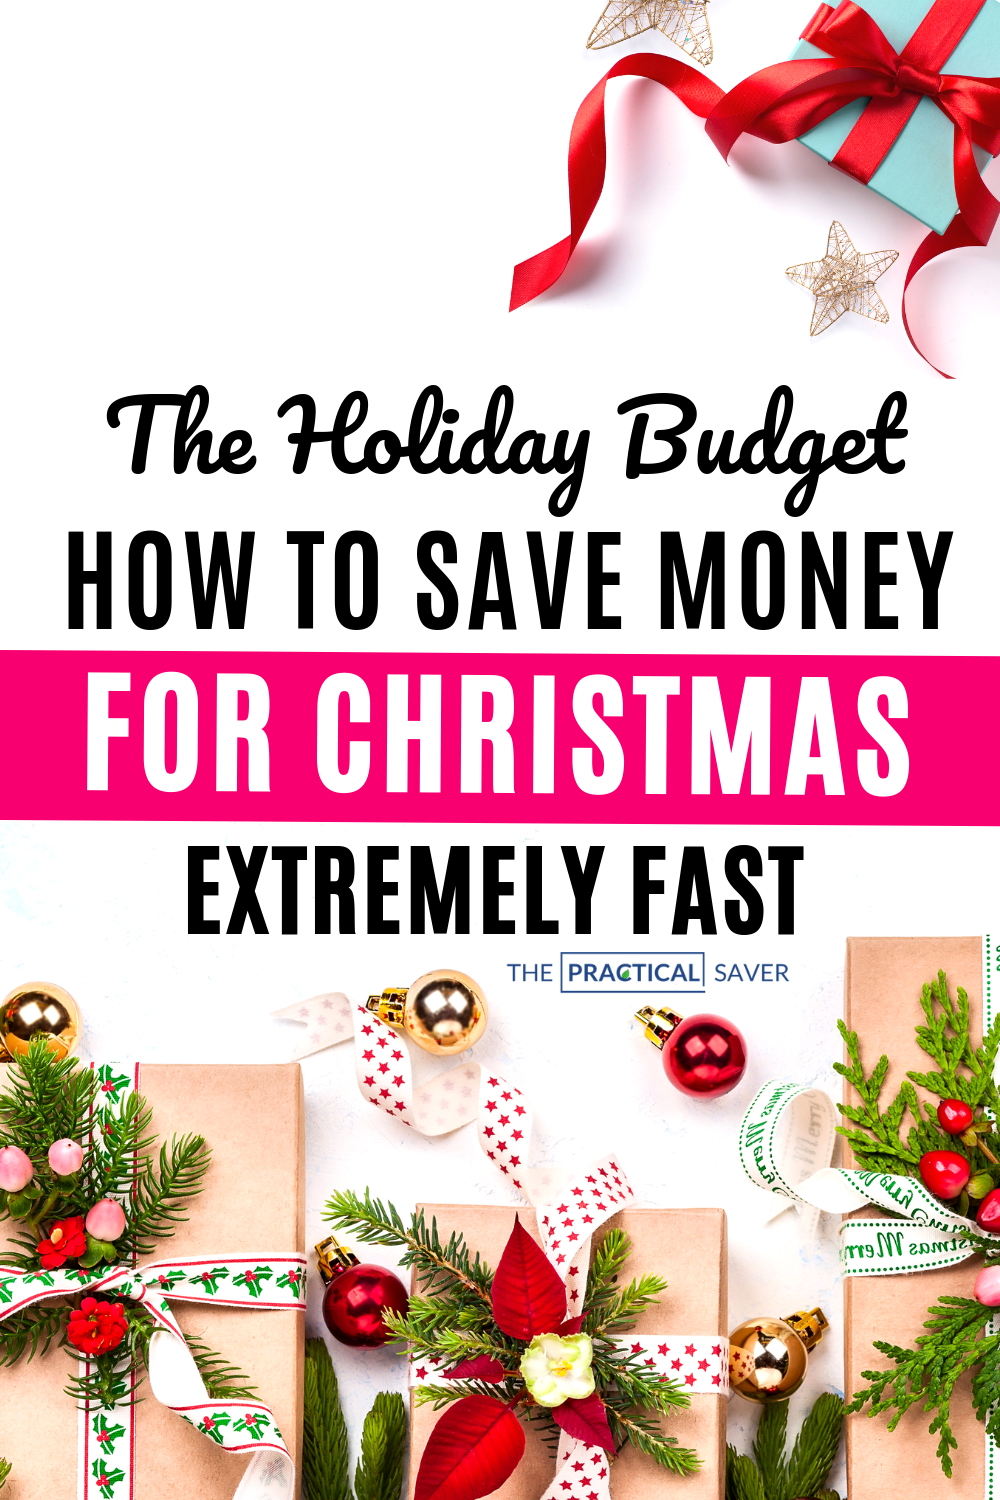 With Christmas just around the corner you need to save money now to avoid debt this holiday. Learn best personal finance tips to save money fast for this Christmas season. Budget hacks to trick yourself into saving money. | The Practical Saver | #holidaytips #savemoney